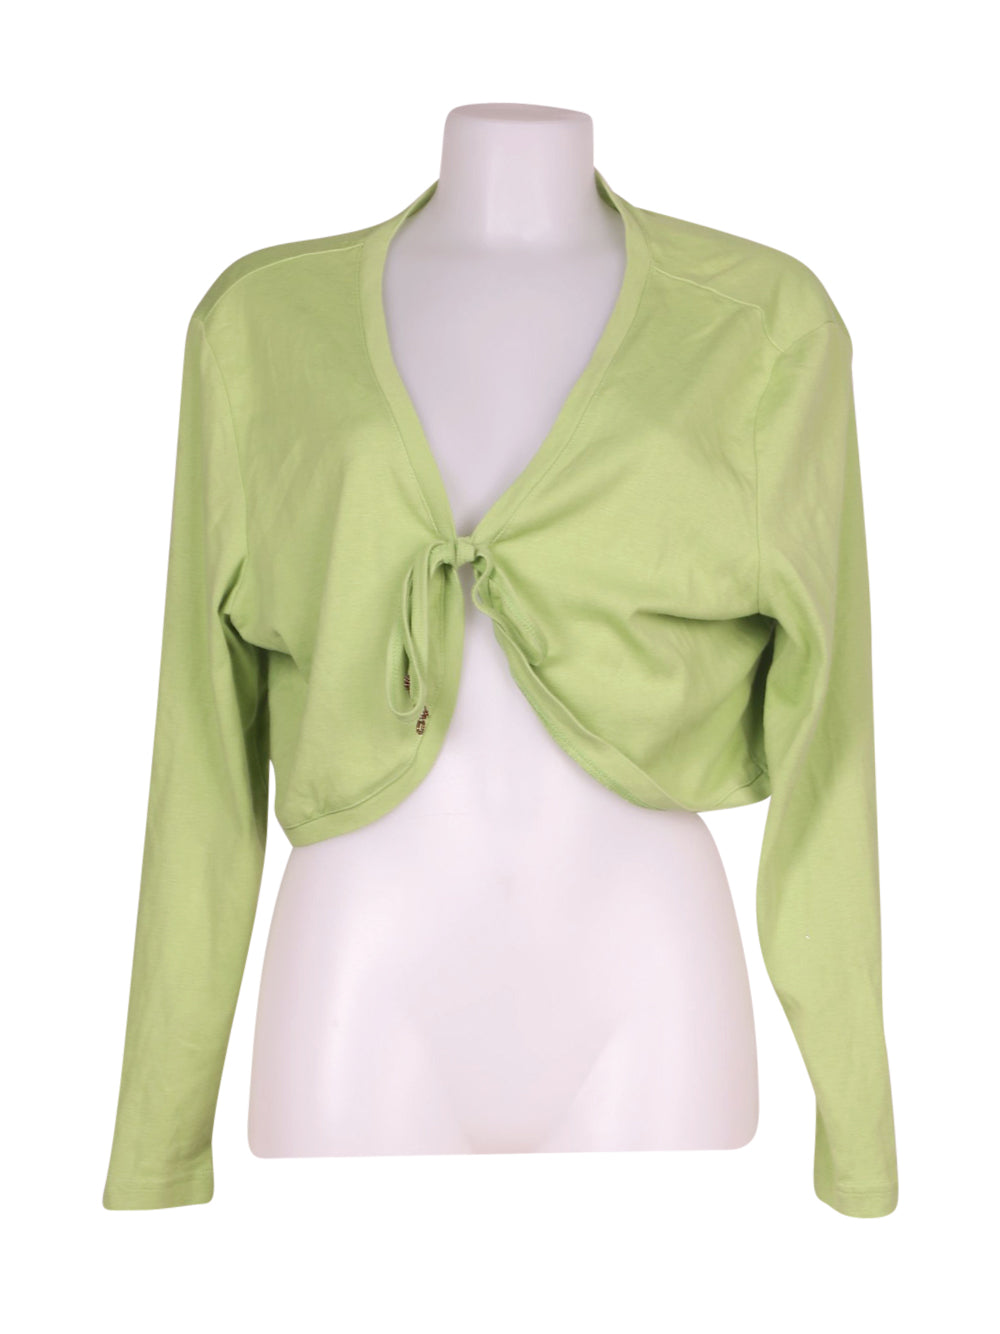 Front photo of Preloved Taifun Green Woman's bolero - size 14/XL